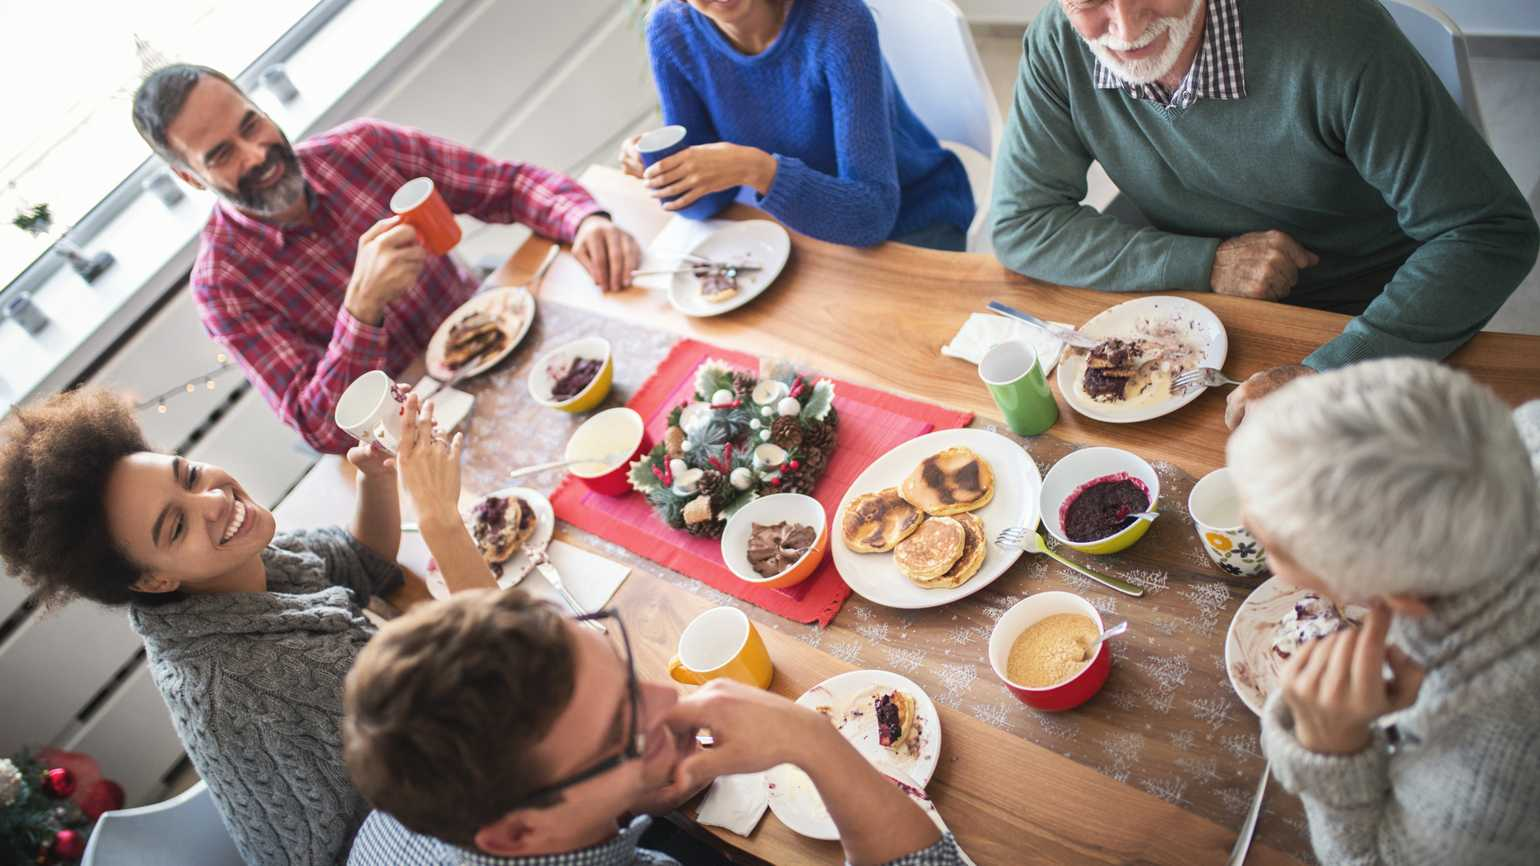 4 Ways to Make Family Gatherings Safe and Upbeat For People With Dementia